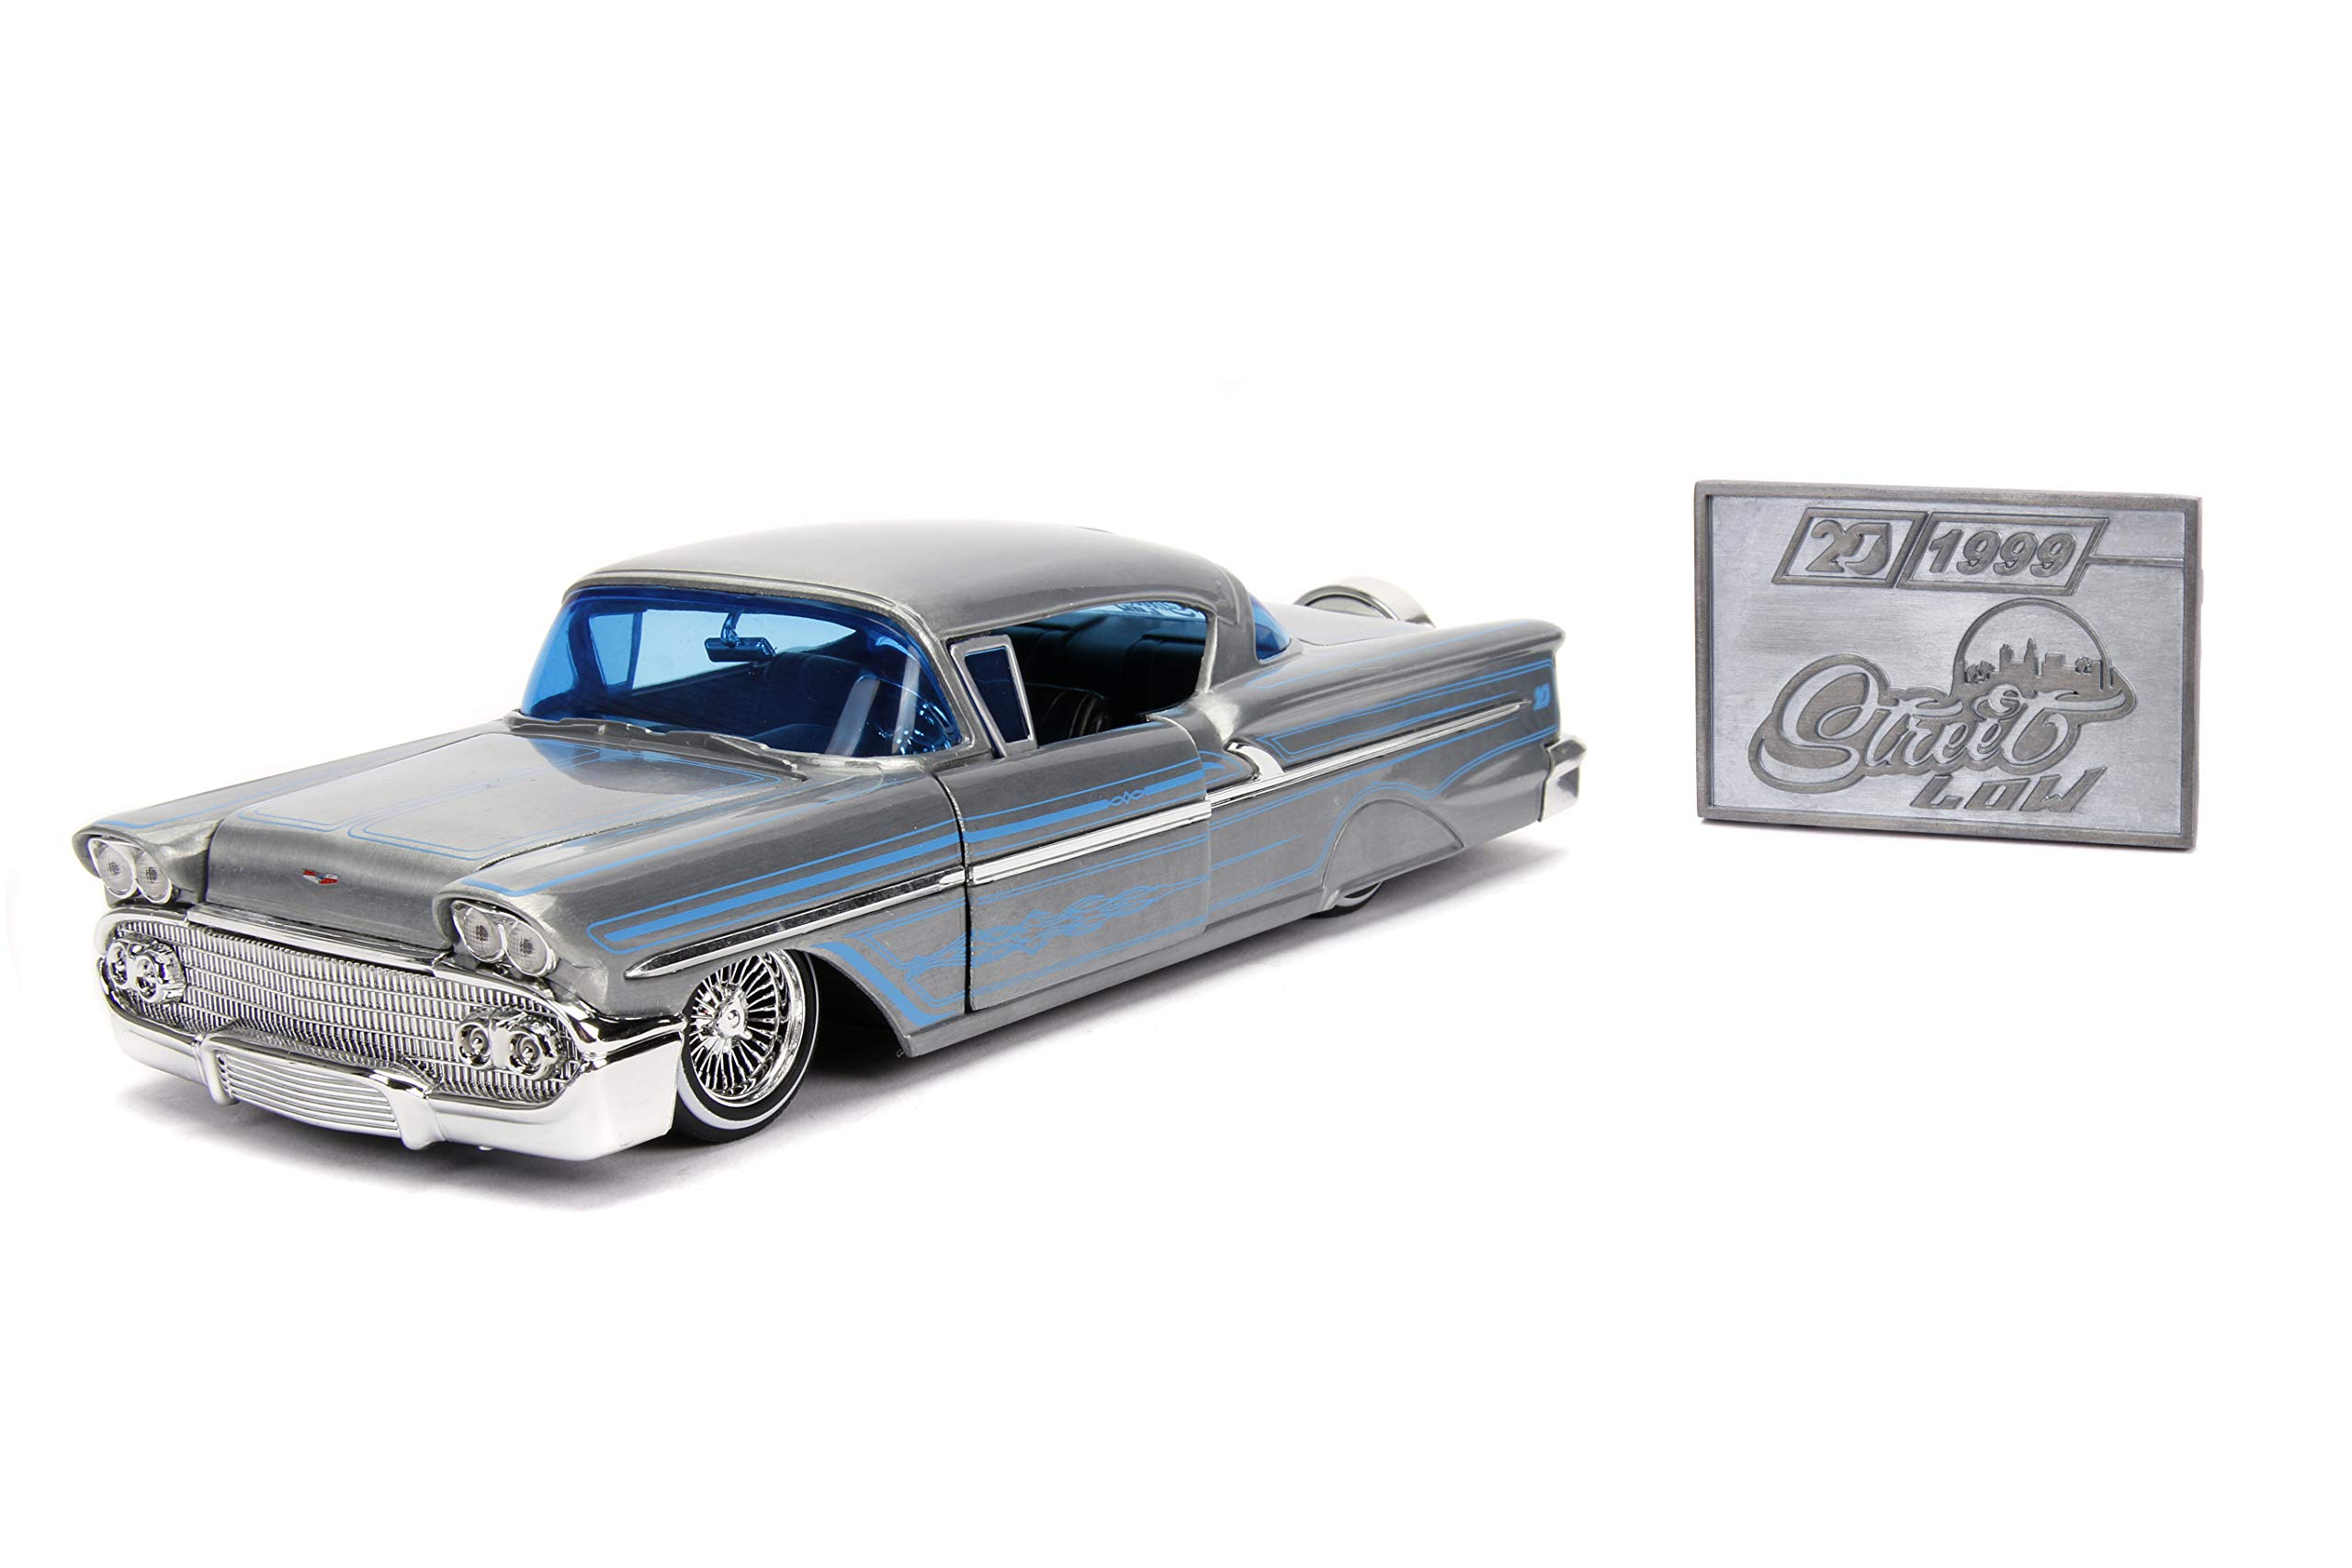 Jada Toys 20th Anniversary Street Low 1958 Chevy Impala Die-Cast Car, 1:24 Scale Bare Metal